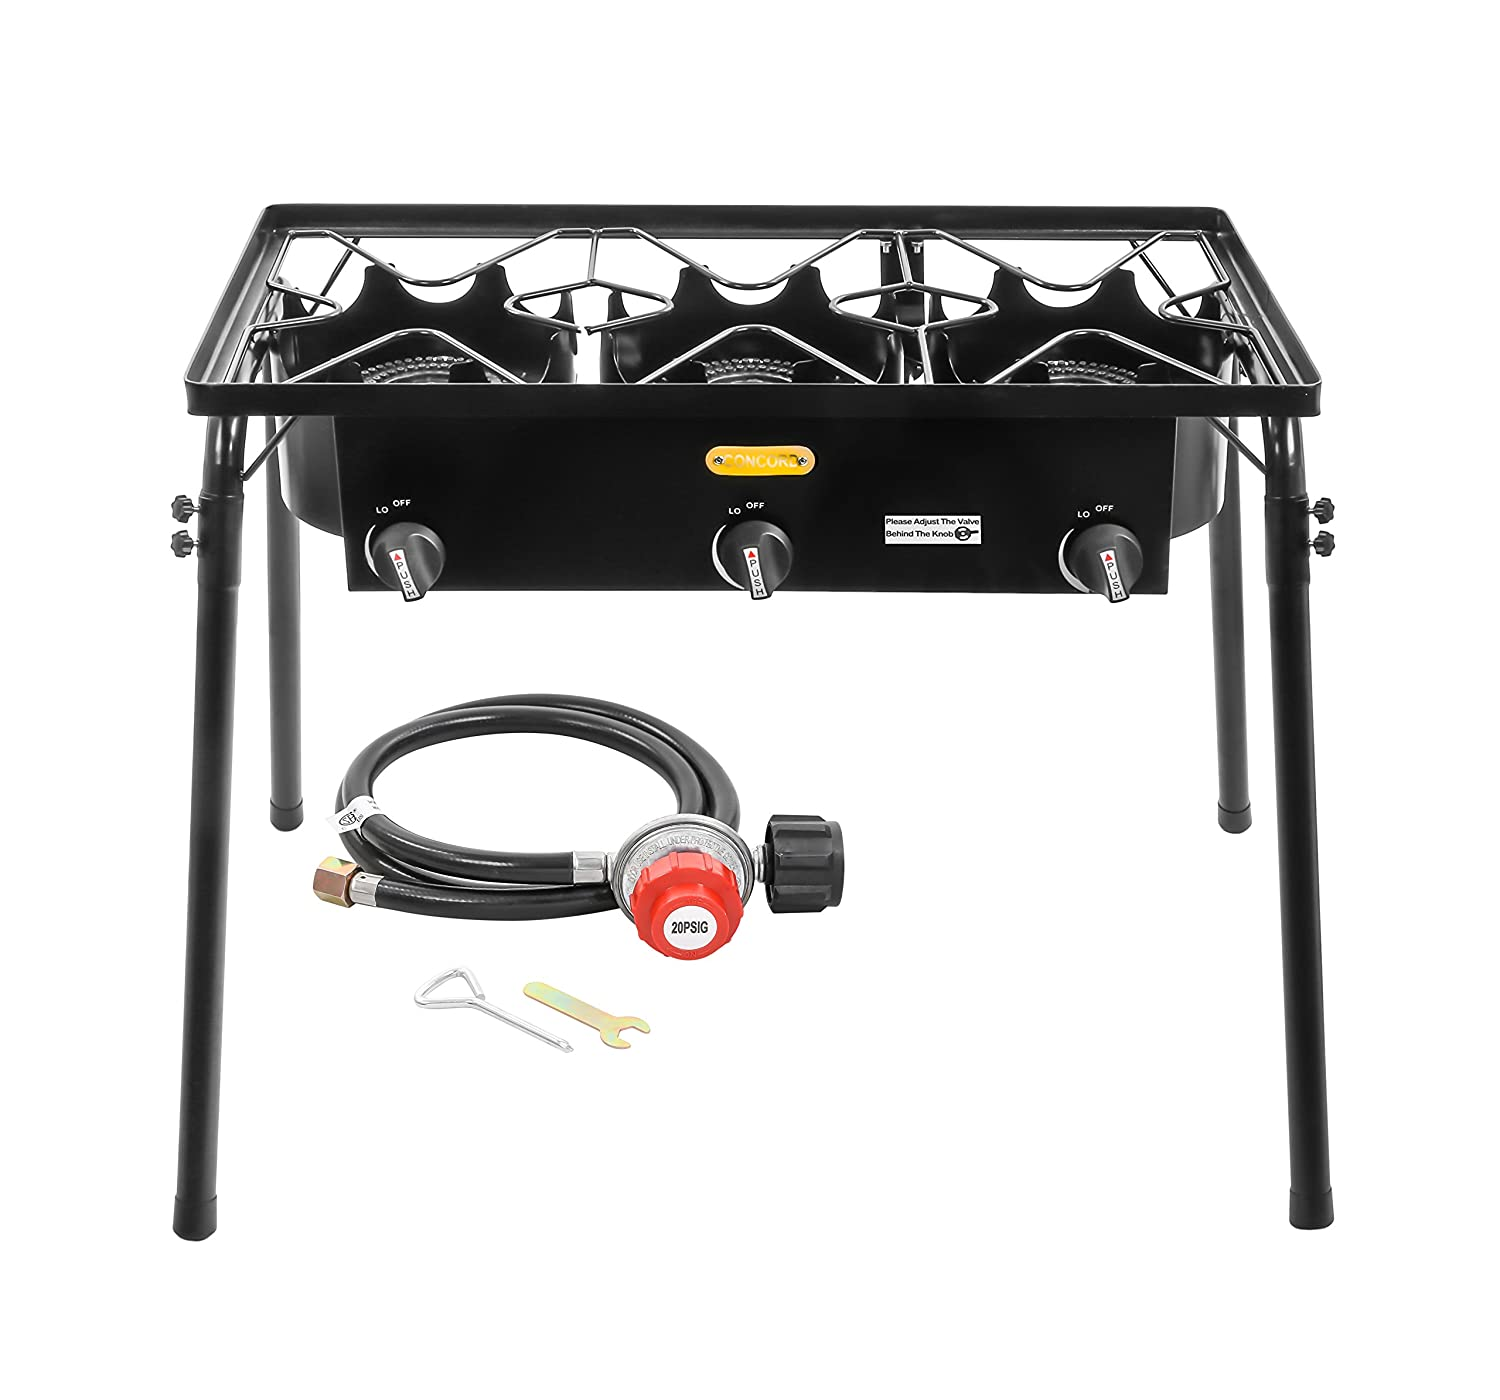 CONCORD Triple Burner Outdoor Stand Stove Cooker w/ Regulator Brewing Supply